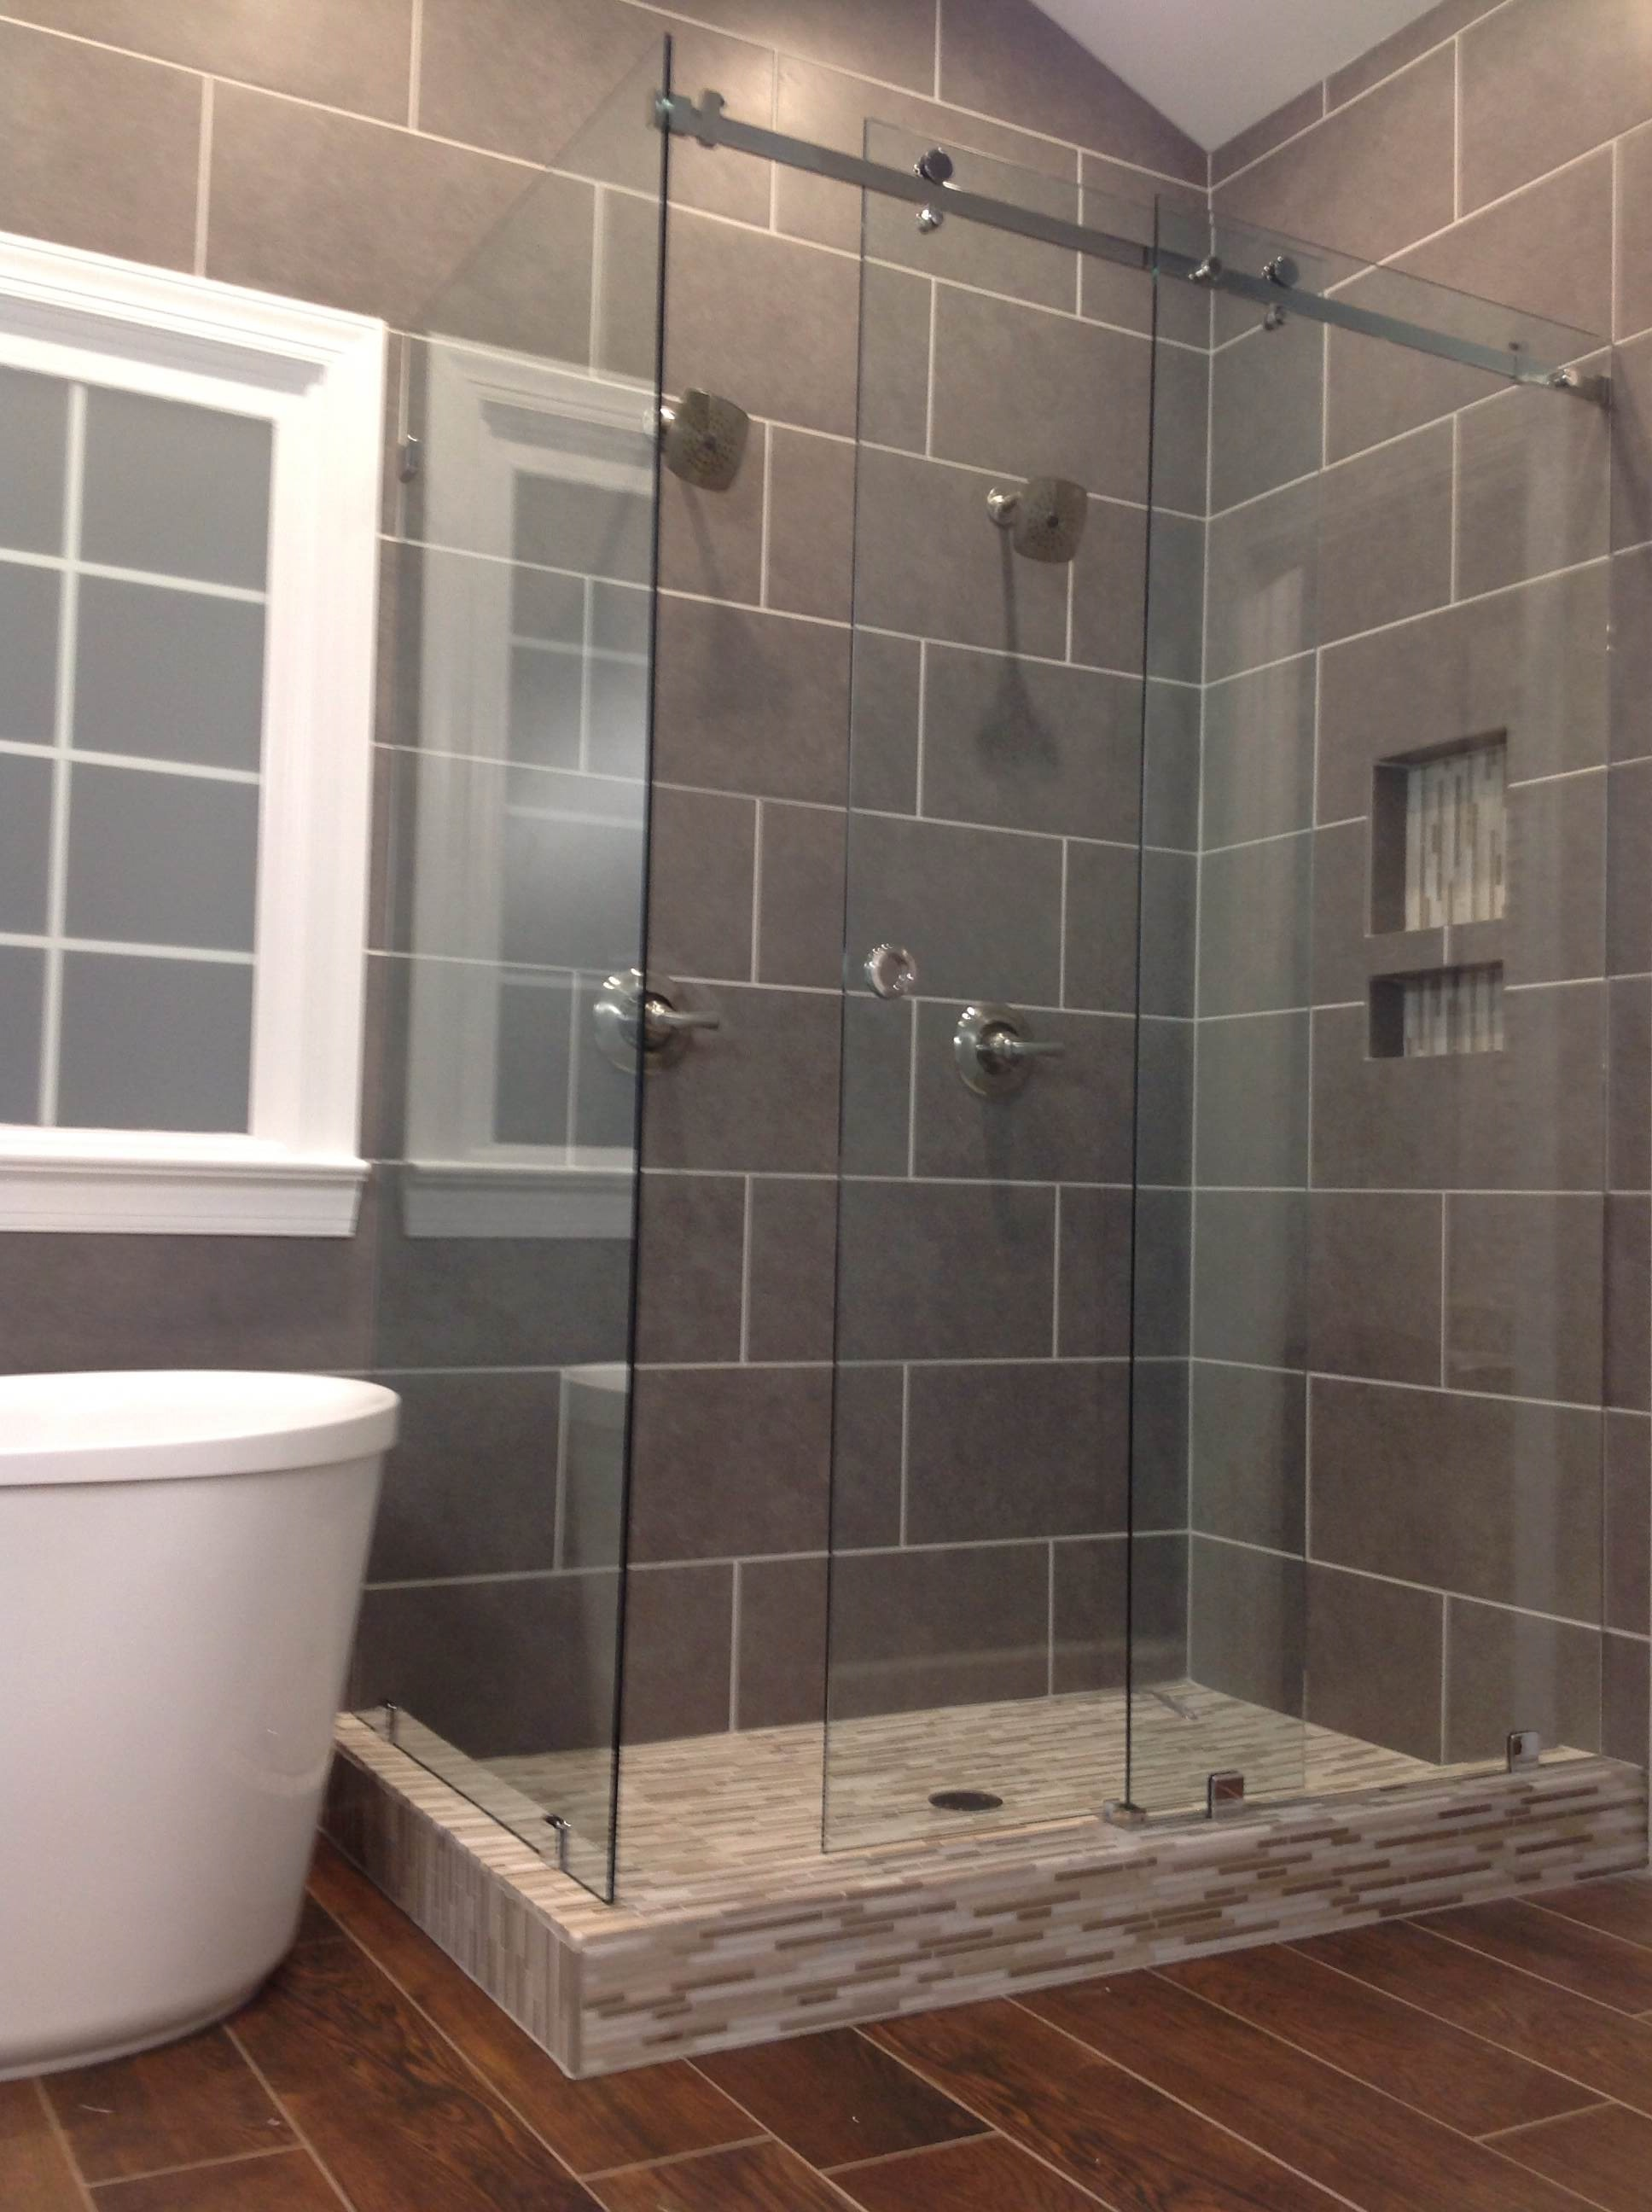 bathroom remodeling – Mia Shower Doors on huge bathroom designs, compact bathroom shower designs, small bathroom with tub and shower designs, awesome bathroom designs, doorless showers small bathroom designs, spanish mediterranean bathroom designs, master bathroom shower designs, bathroom glass door designs,